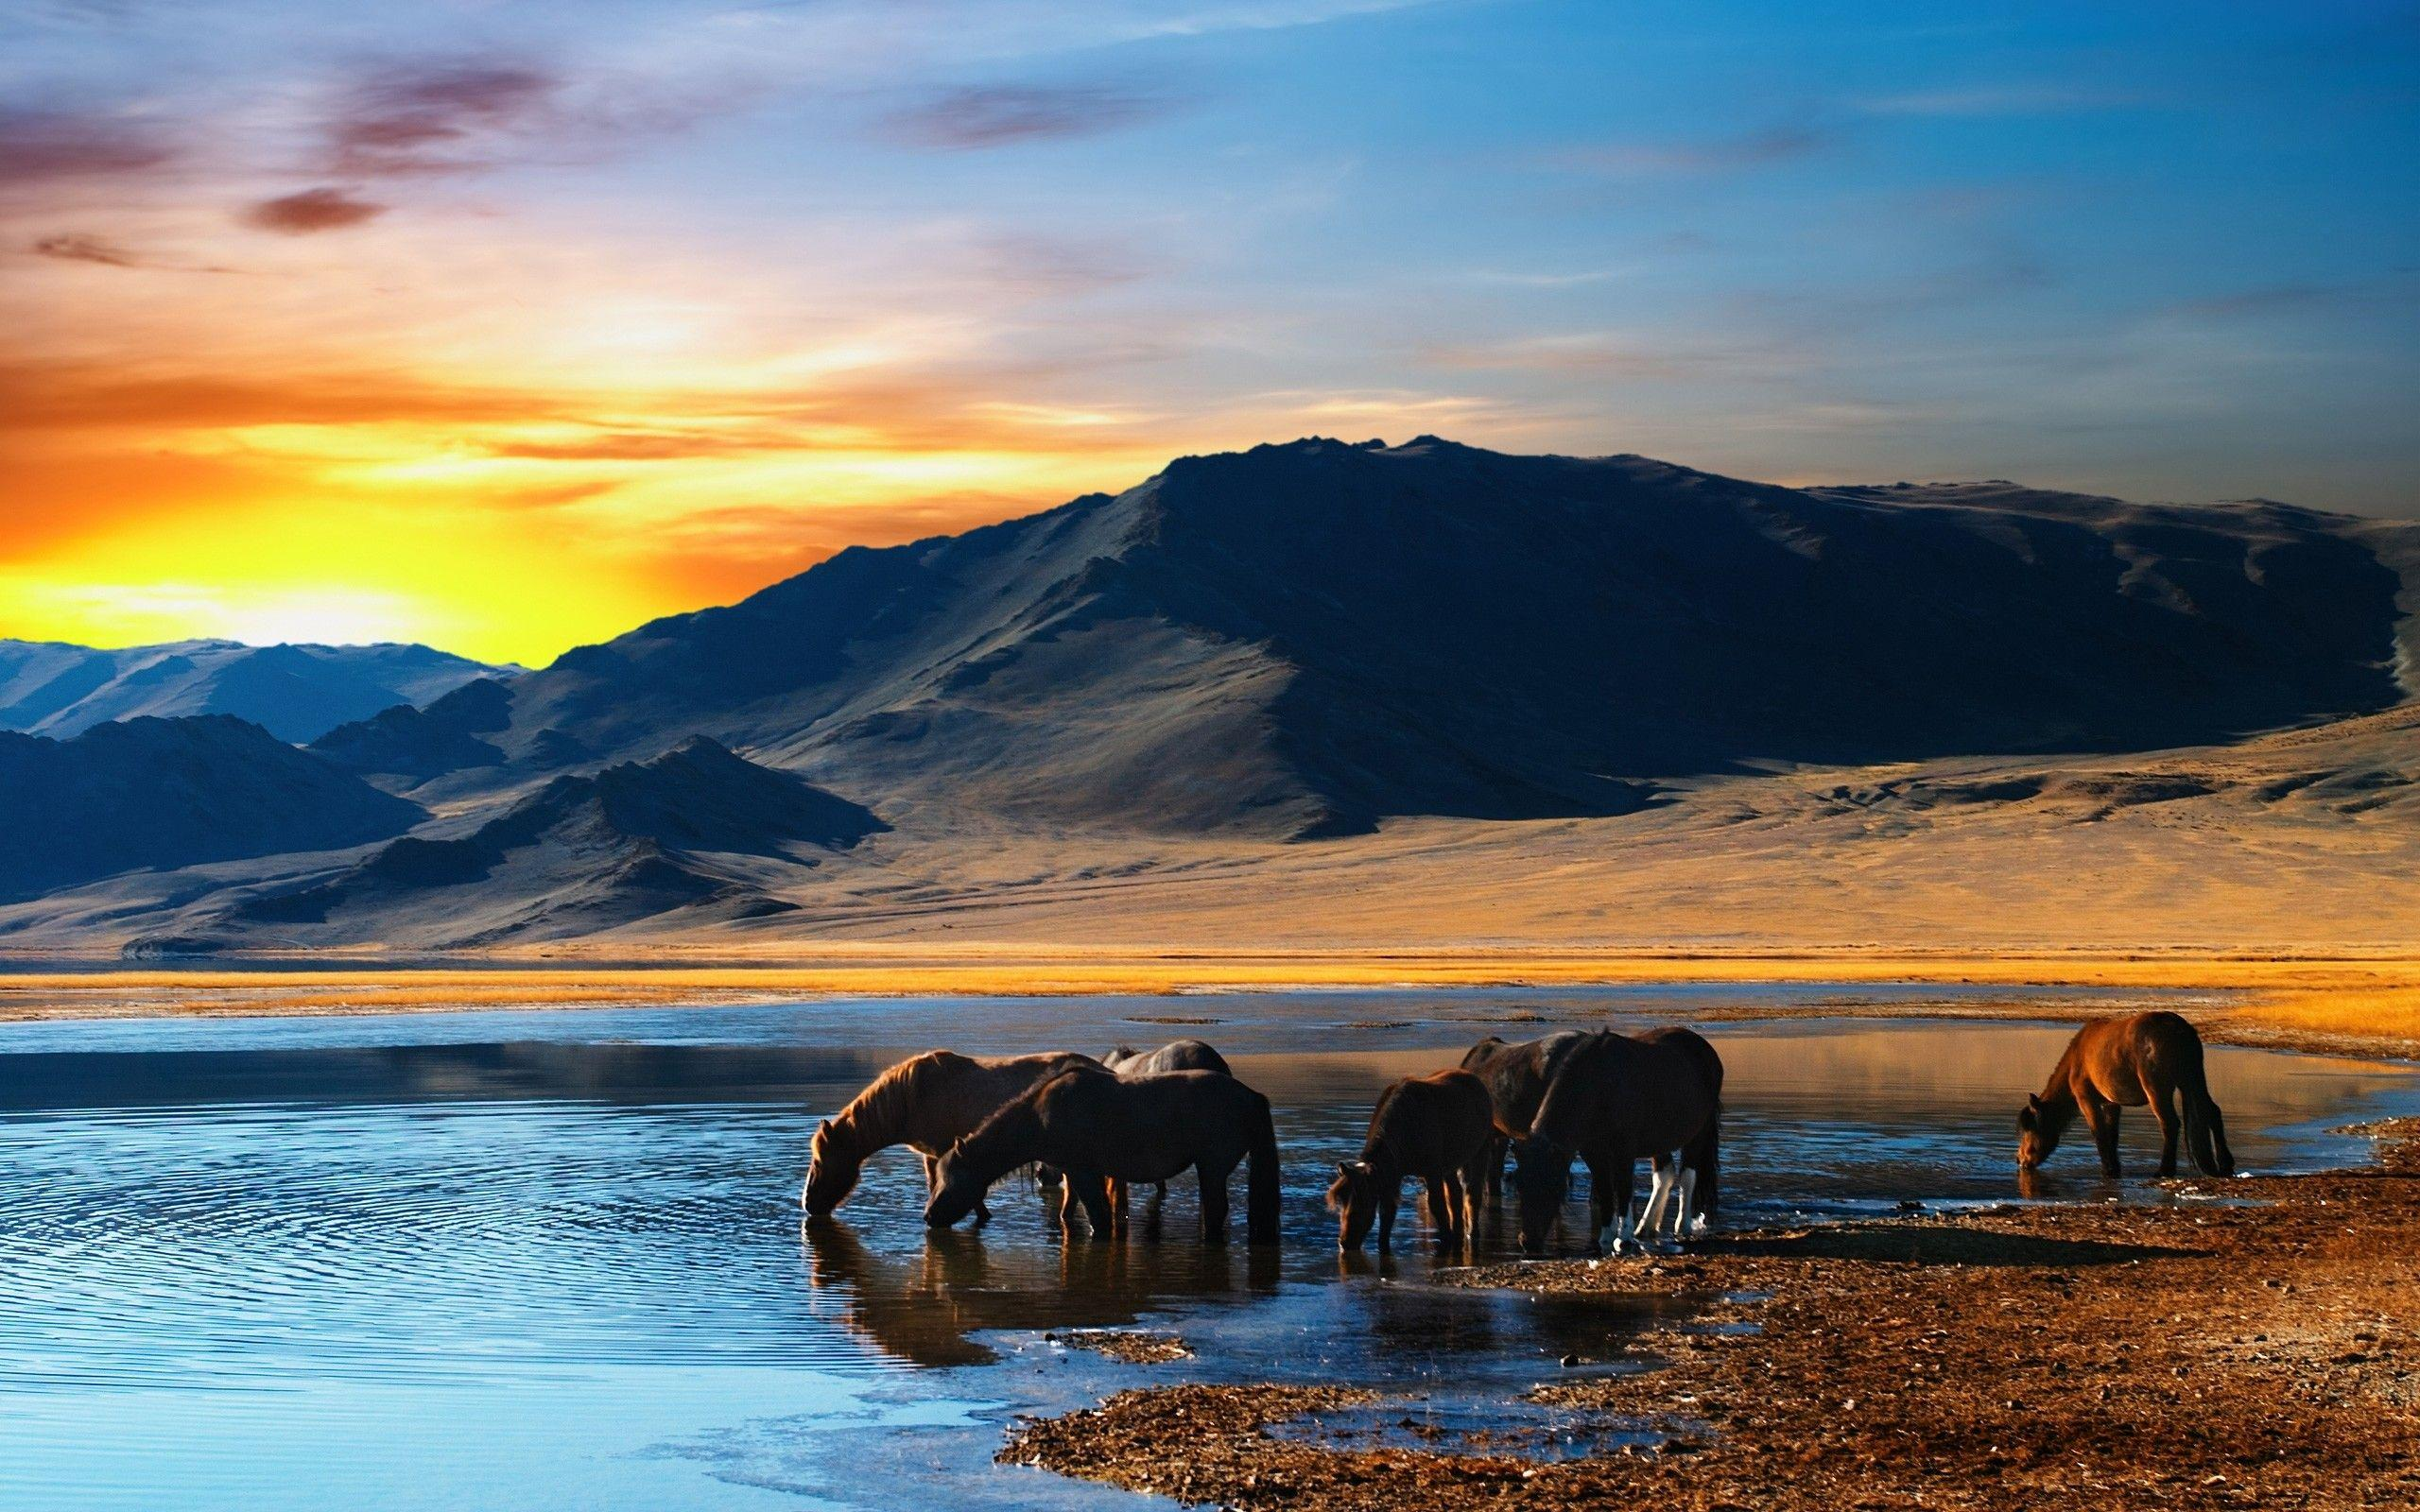 Herd of horses in mongolian wilderness wallpaper | 2560x1600 ...